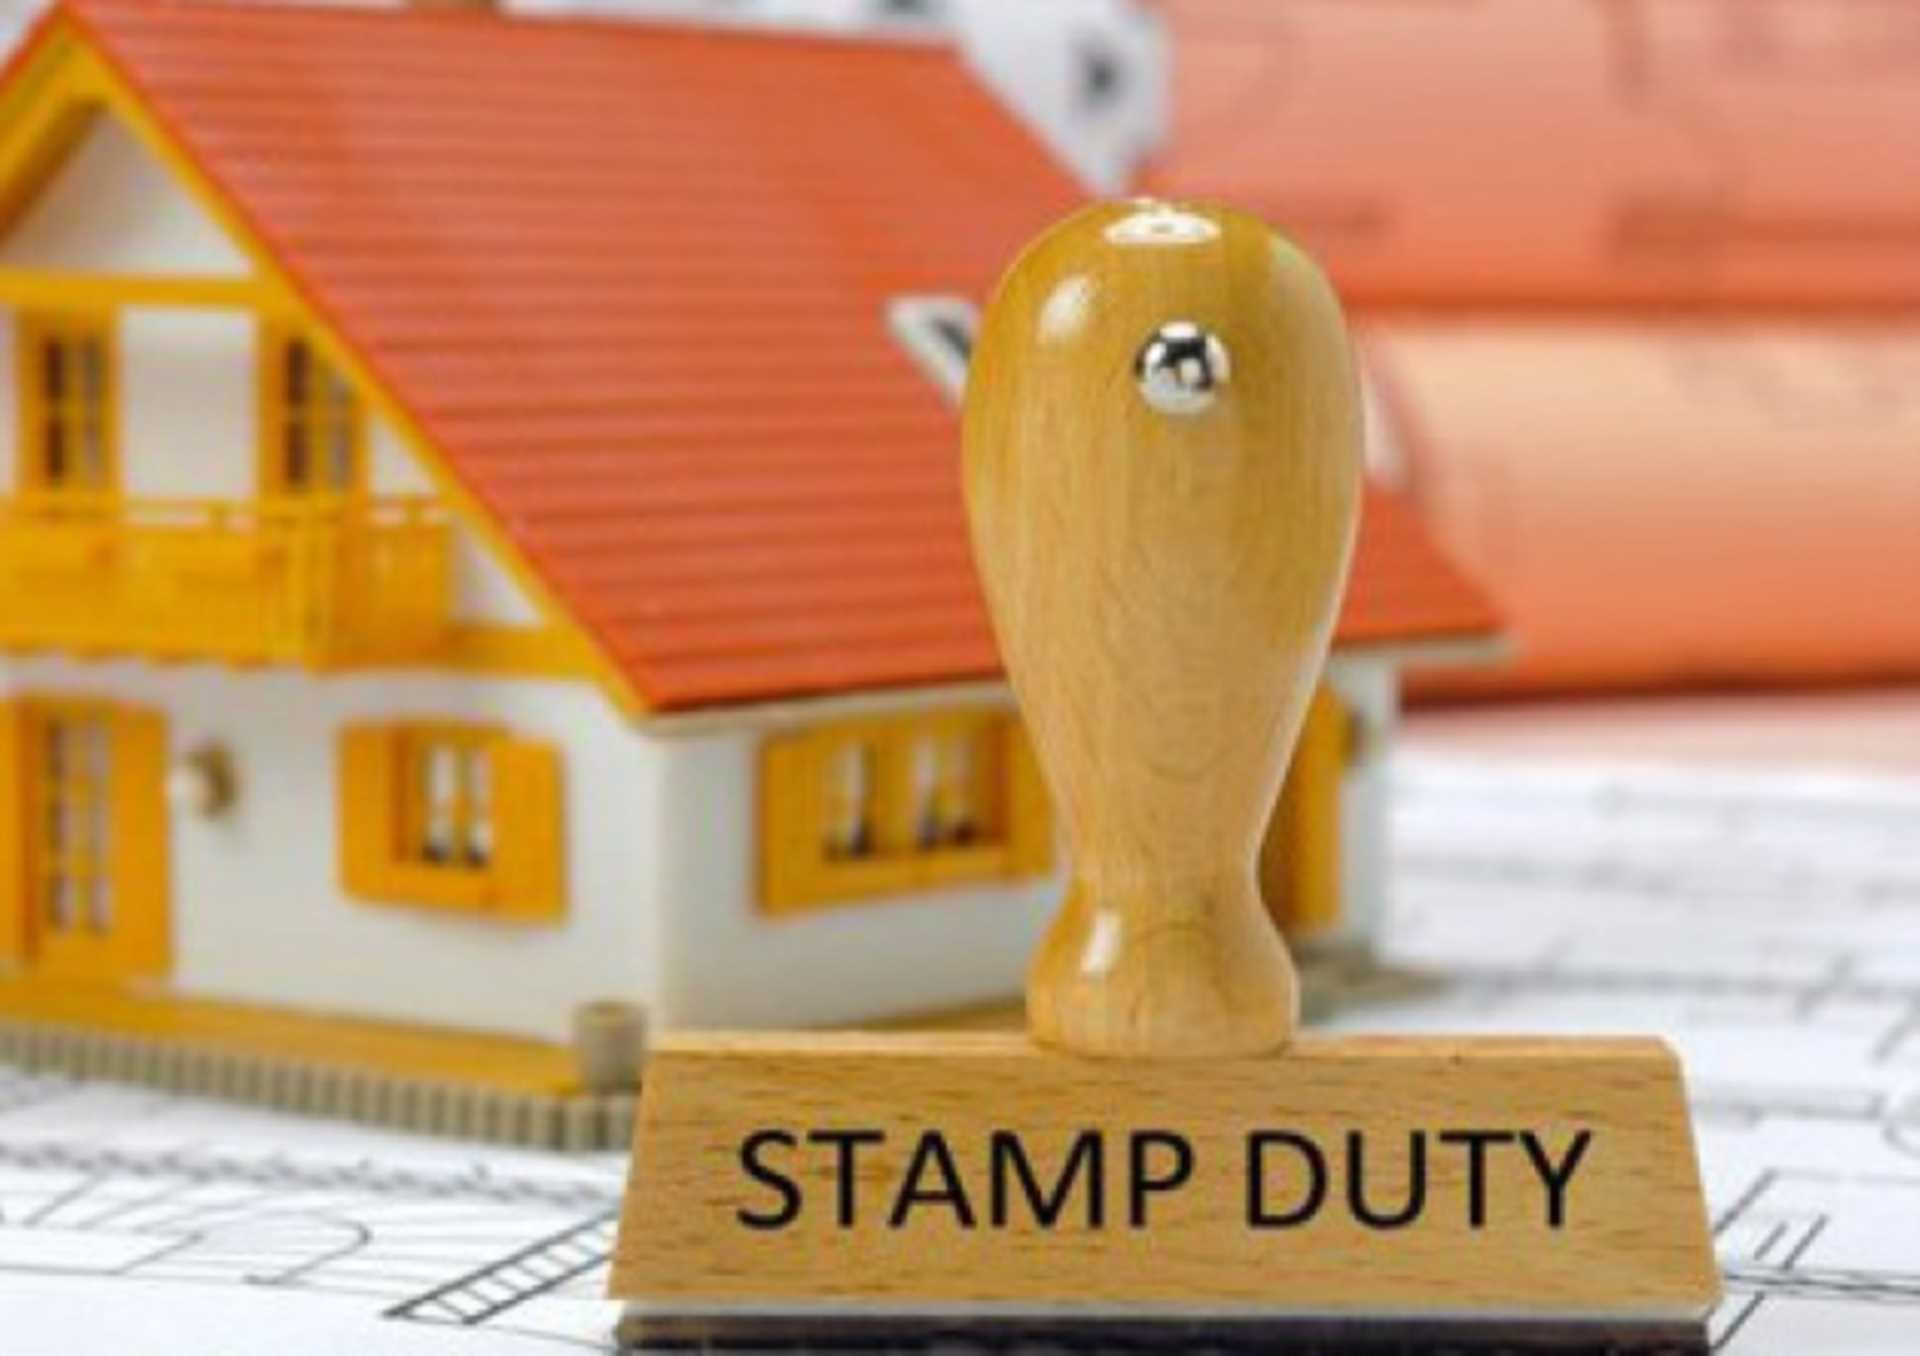 Residential SDLT (Stamp duty)  receipts up 8% annually